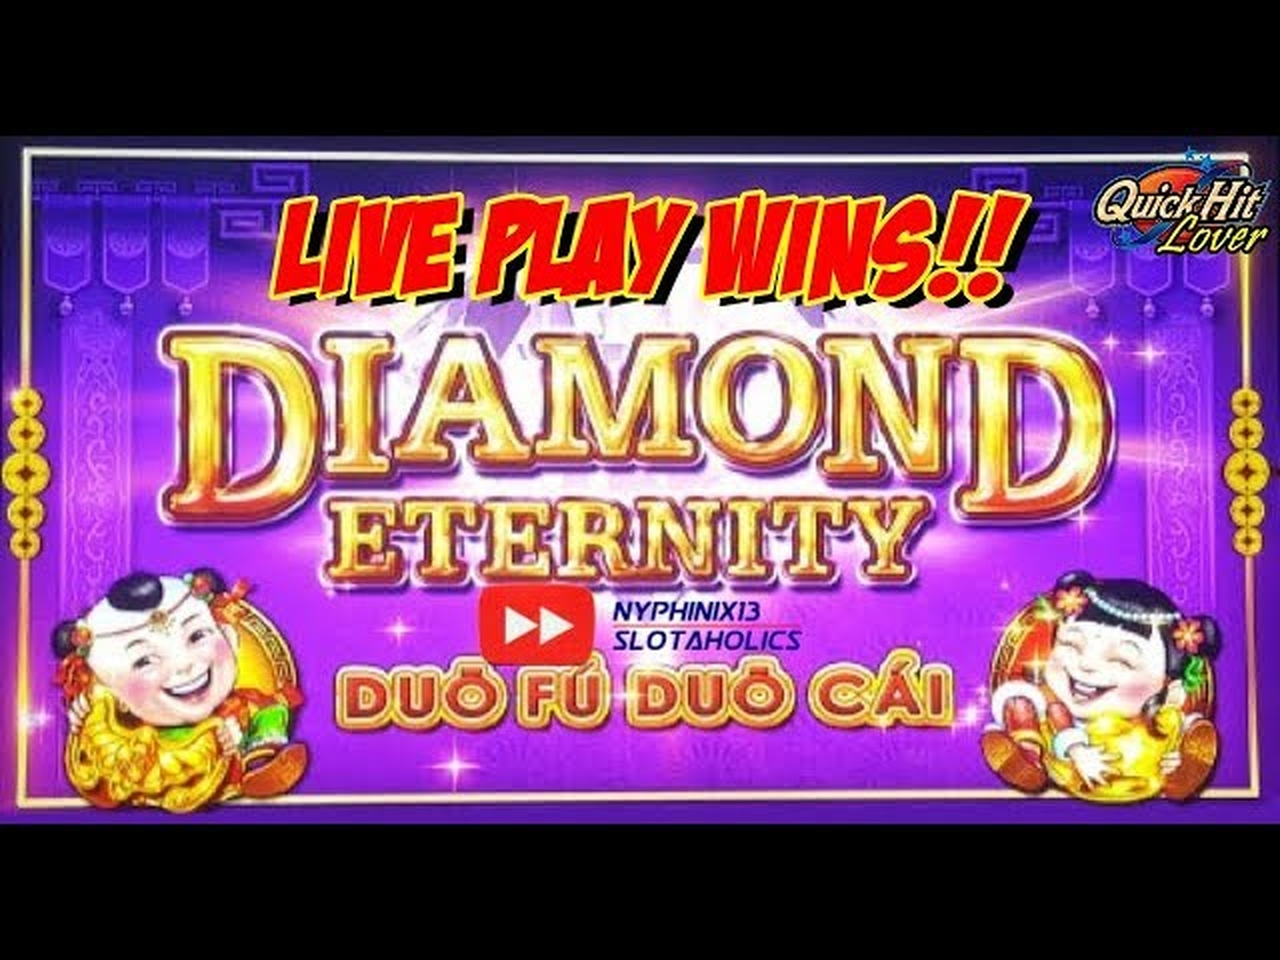 The Diamond Eternity Online Slot Demo Game by SG Interactive